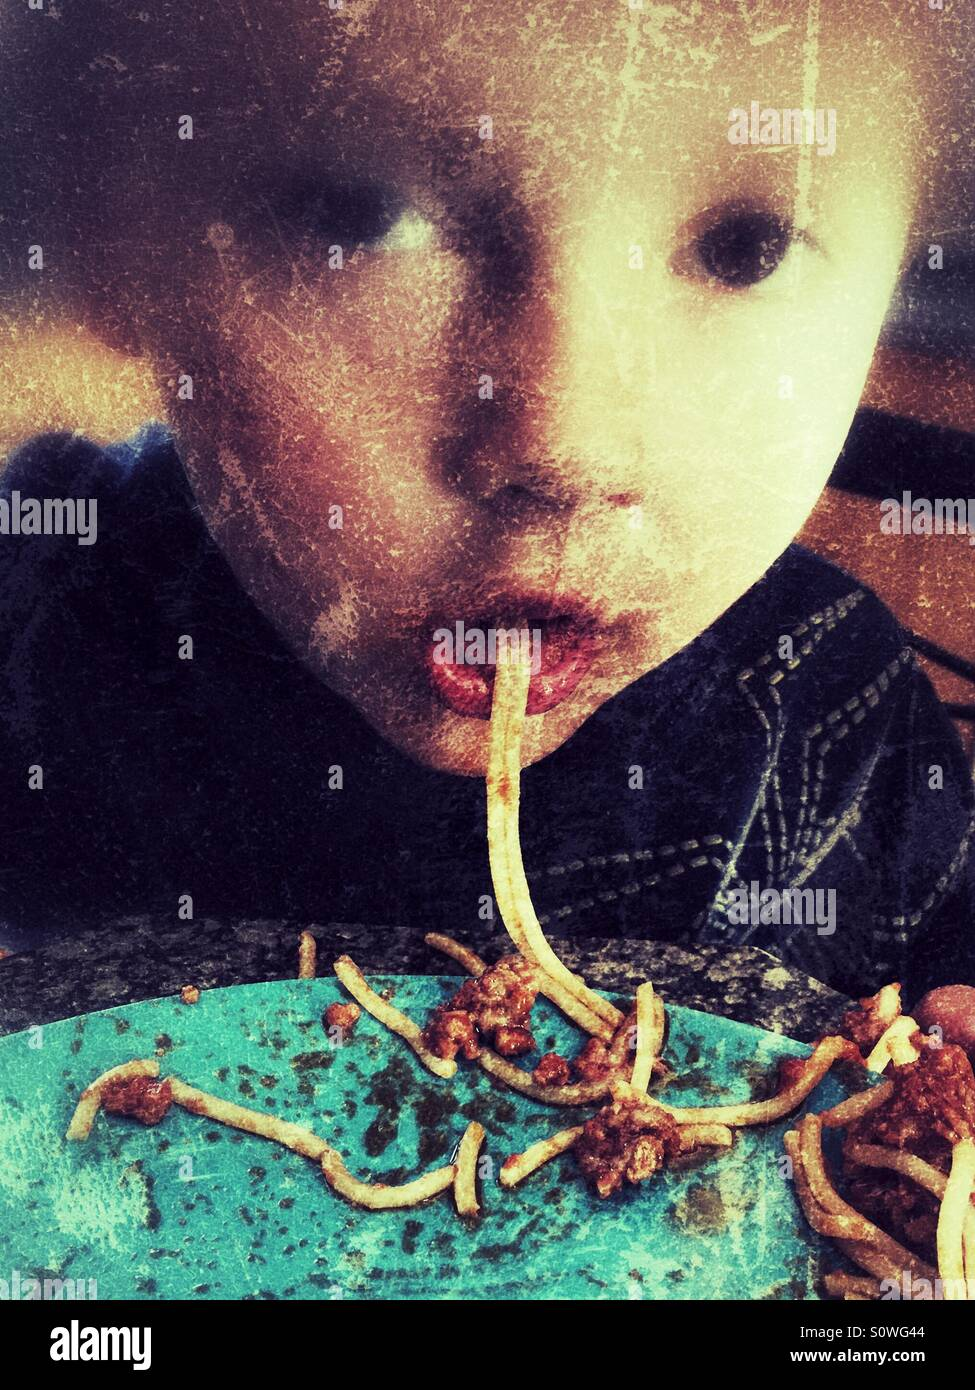 Boy sucking up a piece of spaghetti - Stock Image